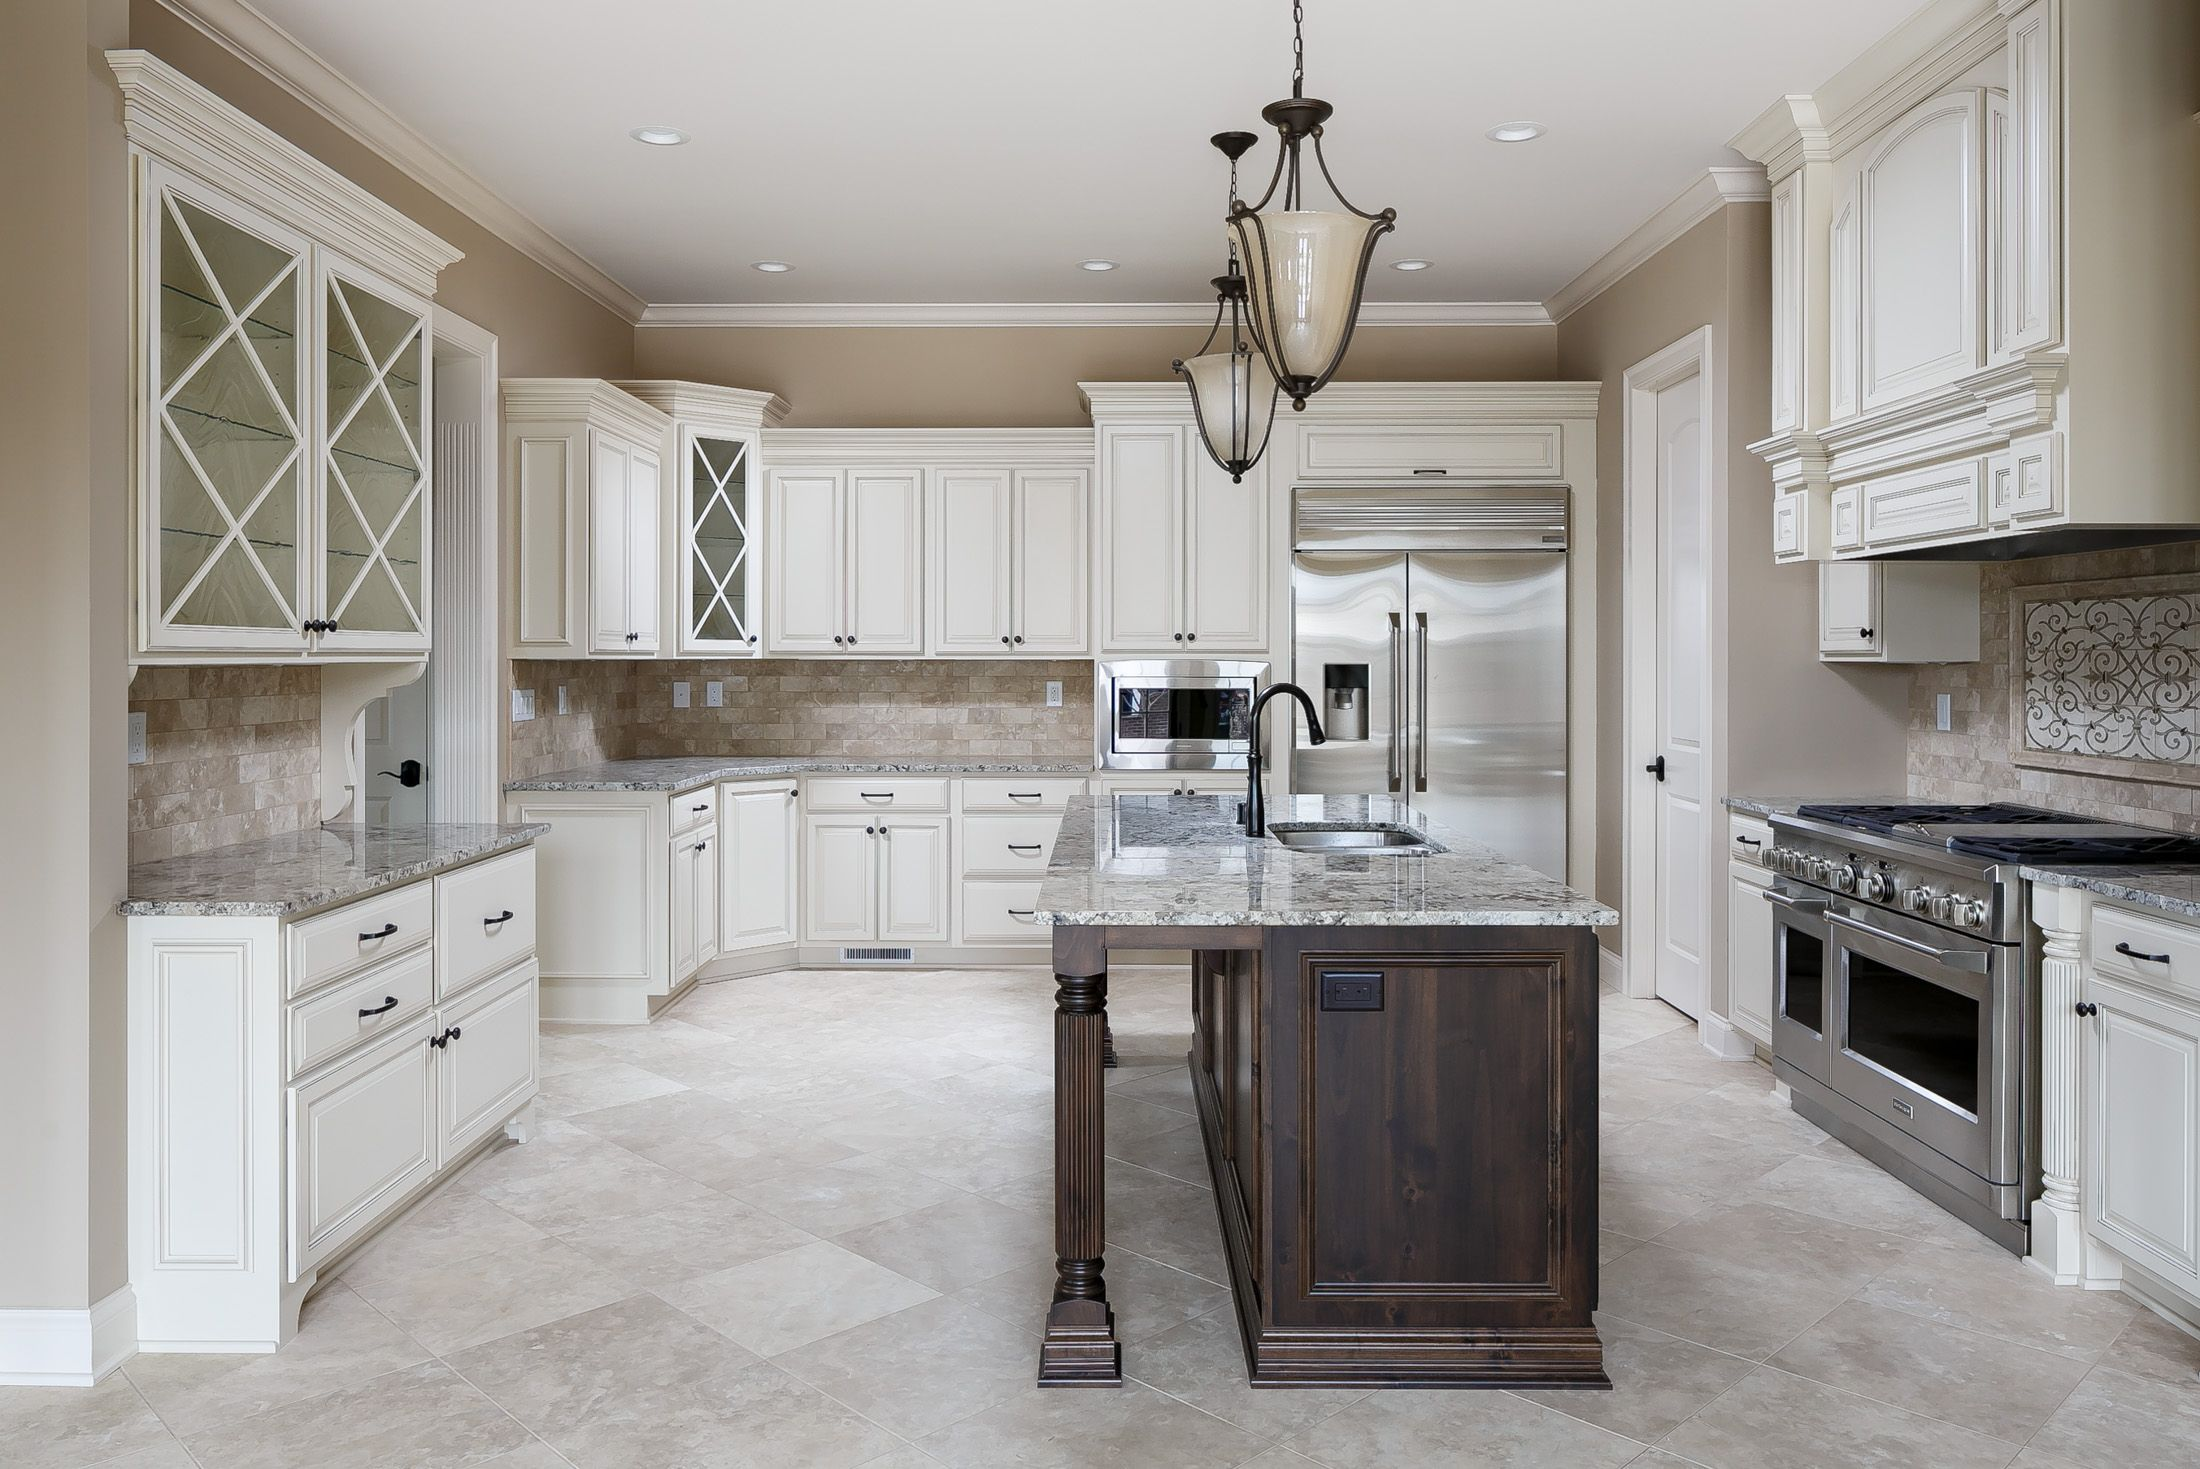 Beautiful italianate inspired kitchen with dine in island